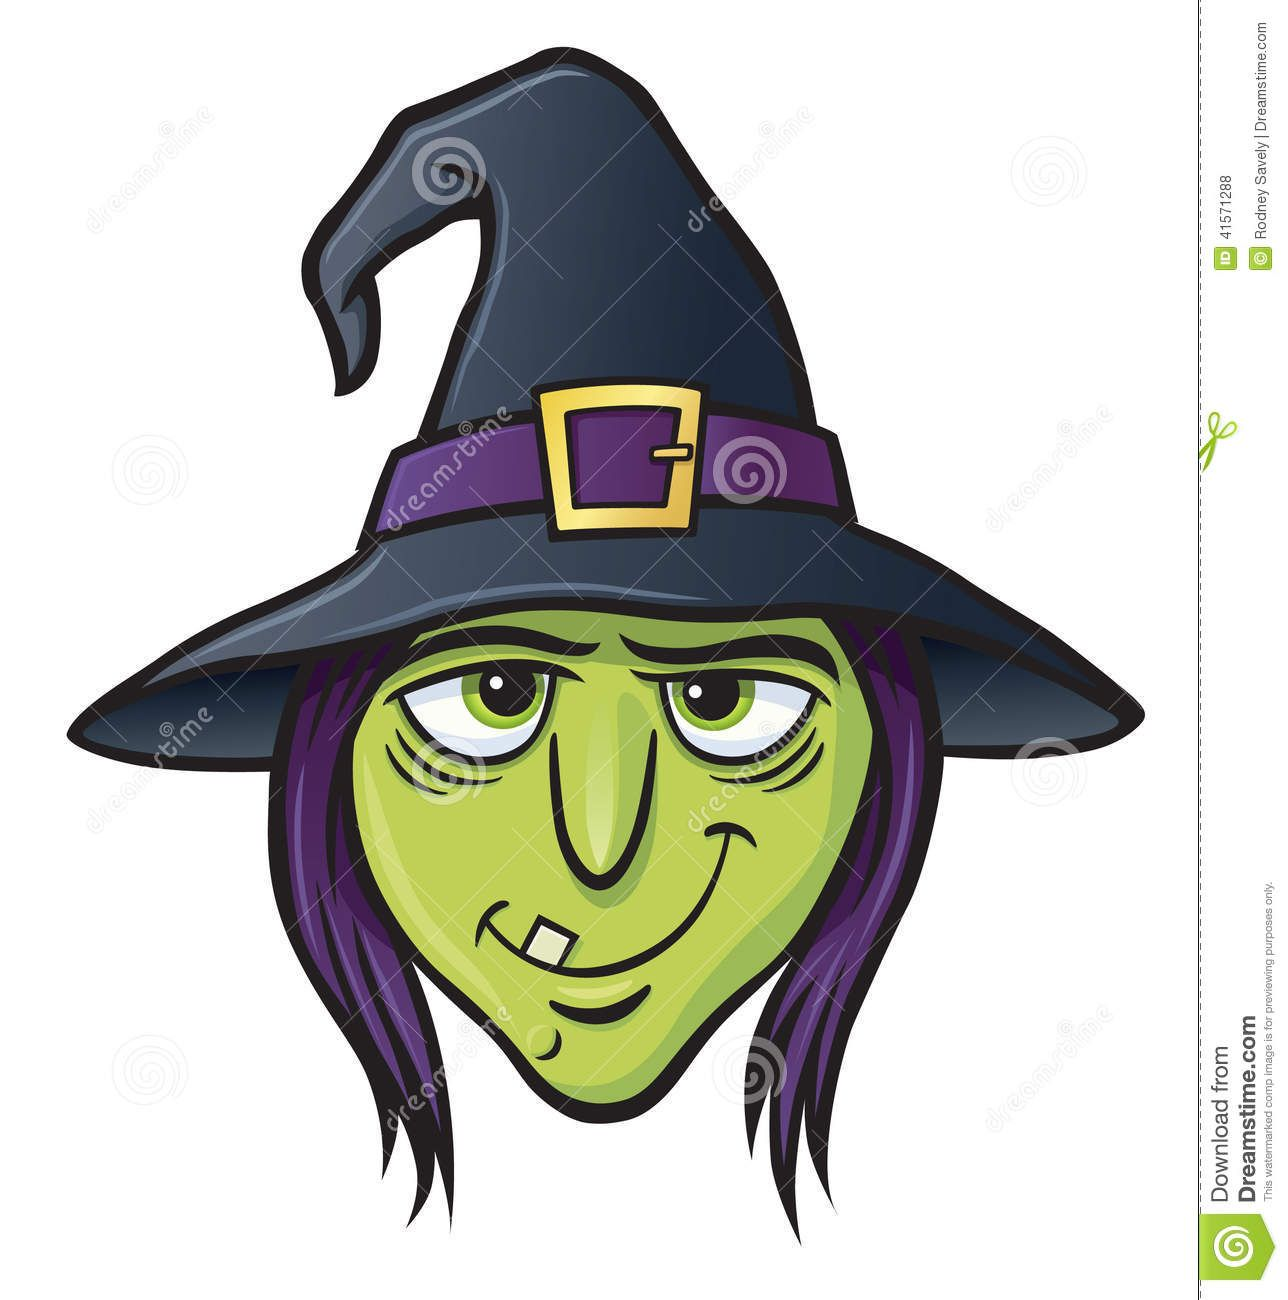 Line Drawing Of Witches Face : Witch face cartoon illustration s g